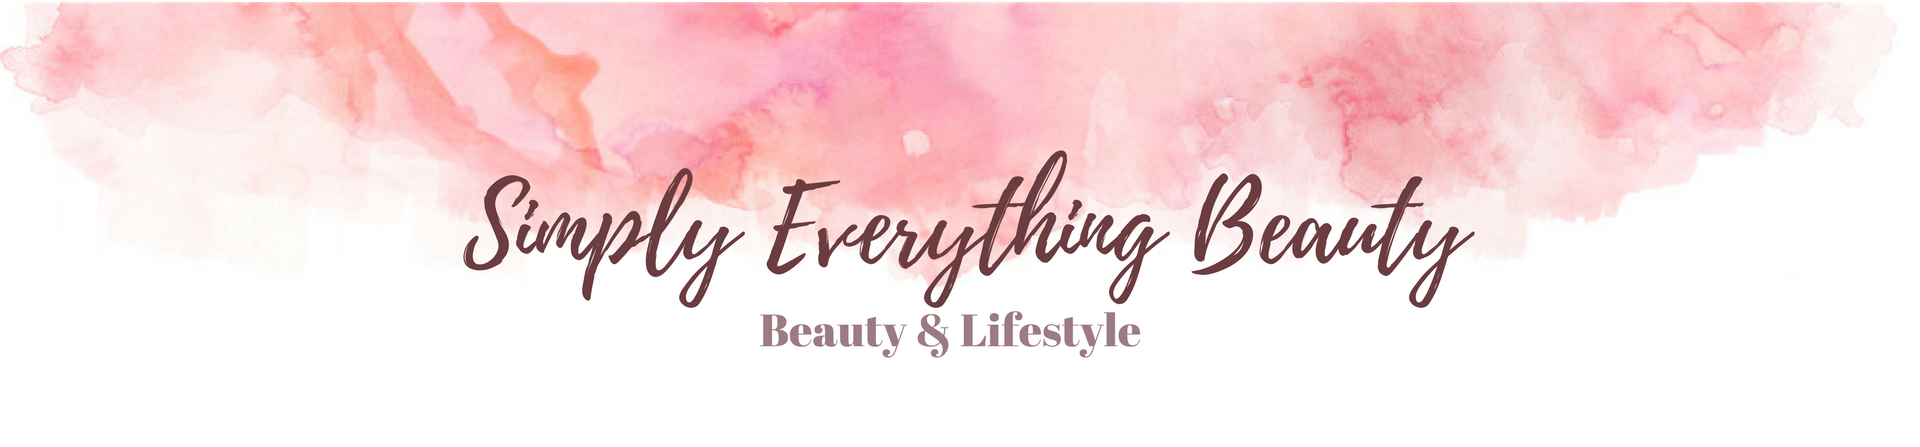 SimplyEverythingBeauty.com